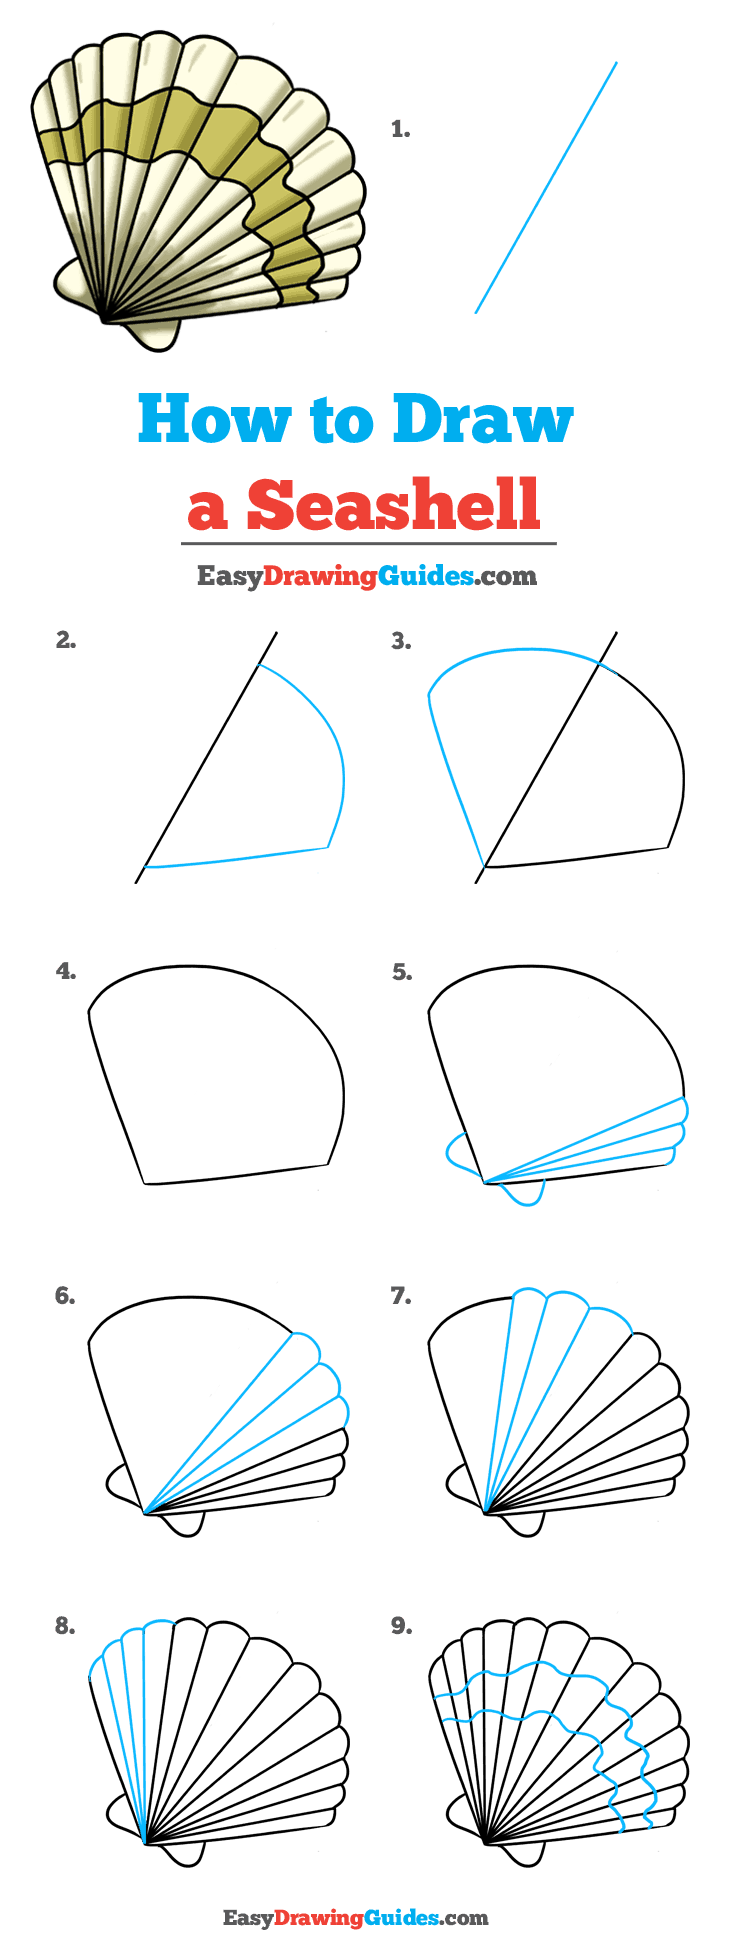 How to Draw a Seashell Step by Step Tutorial Image